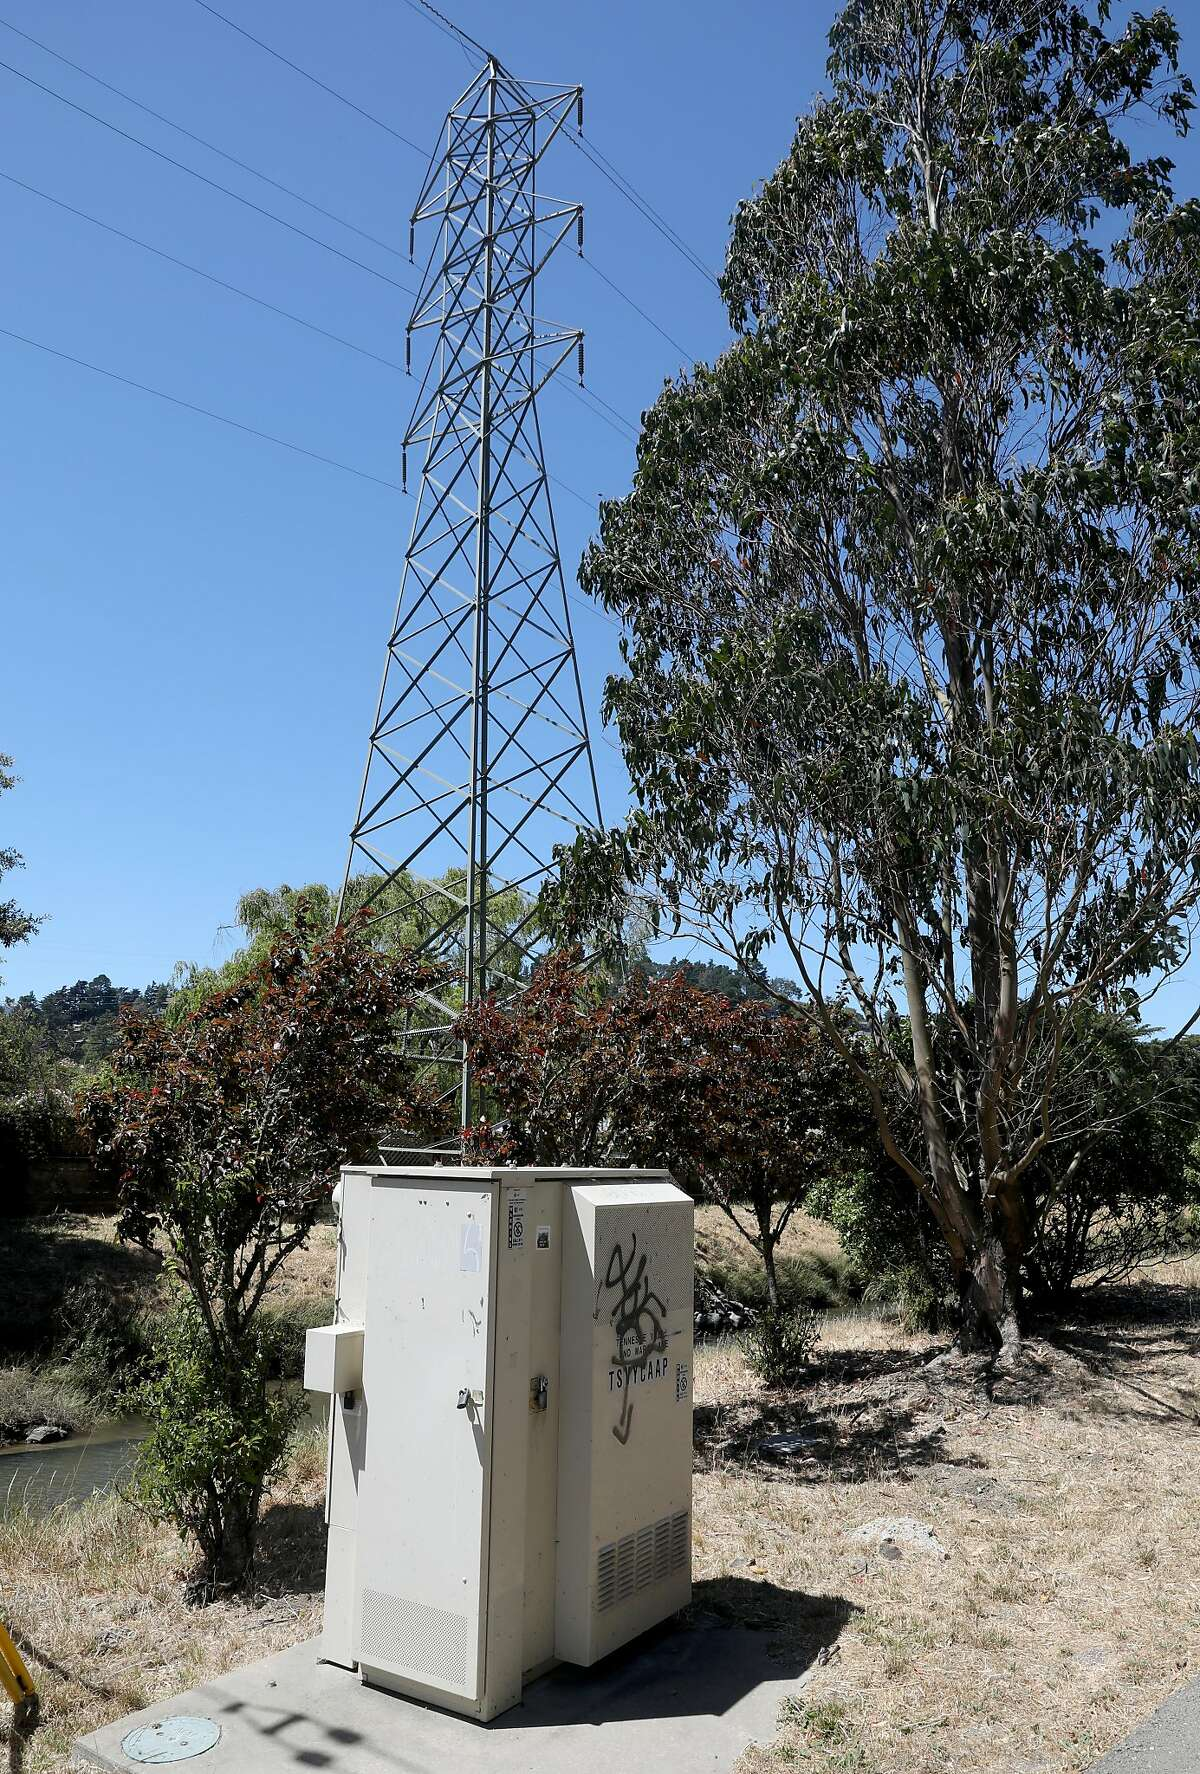 Marin power line seen behind a ATT underground power line at Tennessee Valley Rd. @ Marin Ave. next to the Charles F. McGlashan multiuse pathway on Monday, July 15, 2019 in Mill Valley, Calif.